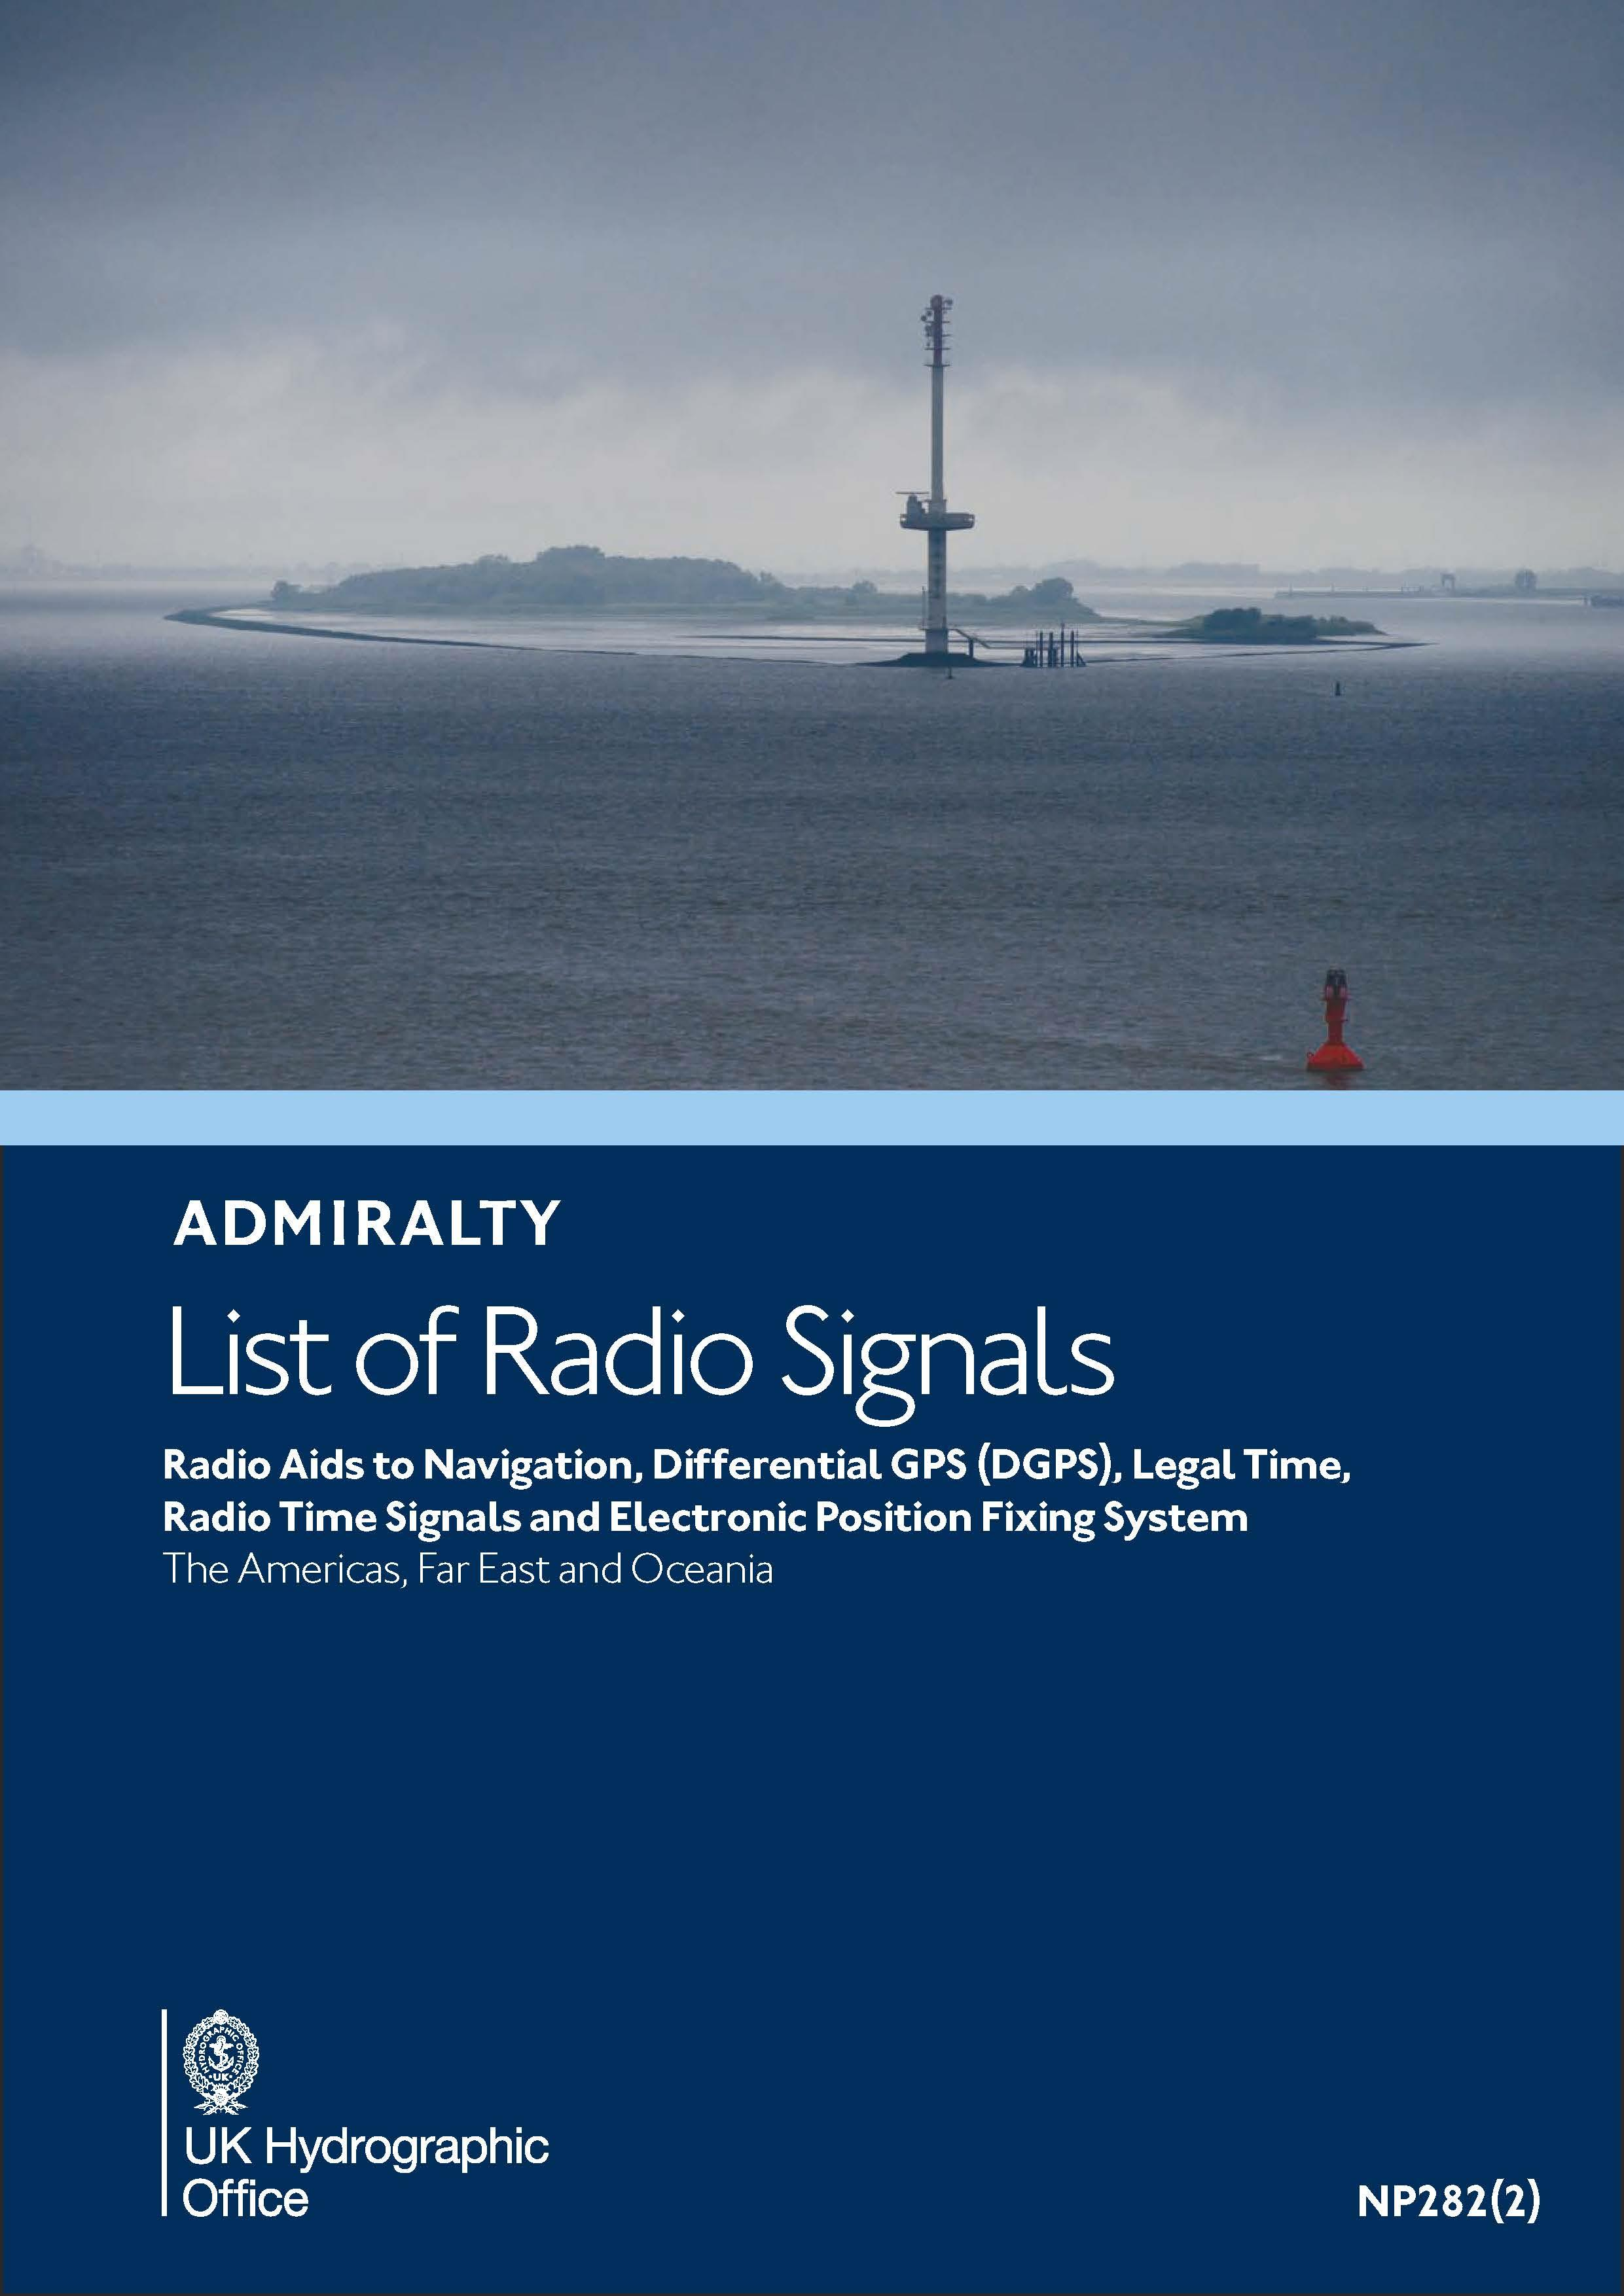 ADMIRALTY NP282(2) RadioSignals Position Fixing Systems & Time Signals - APAC